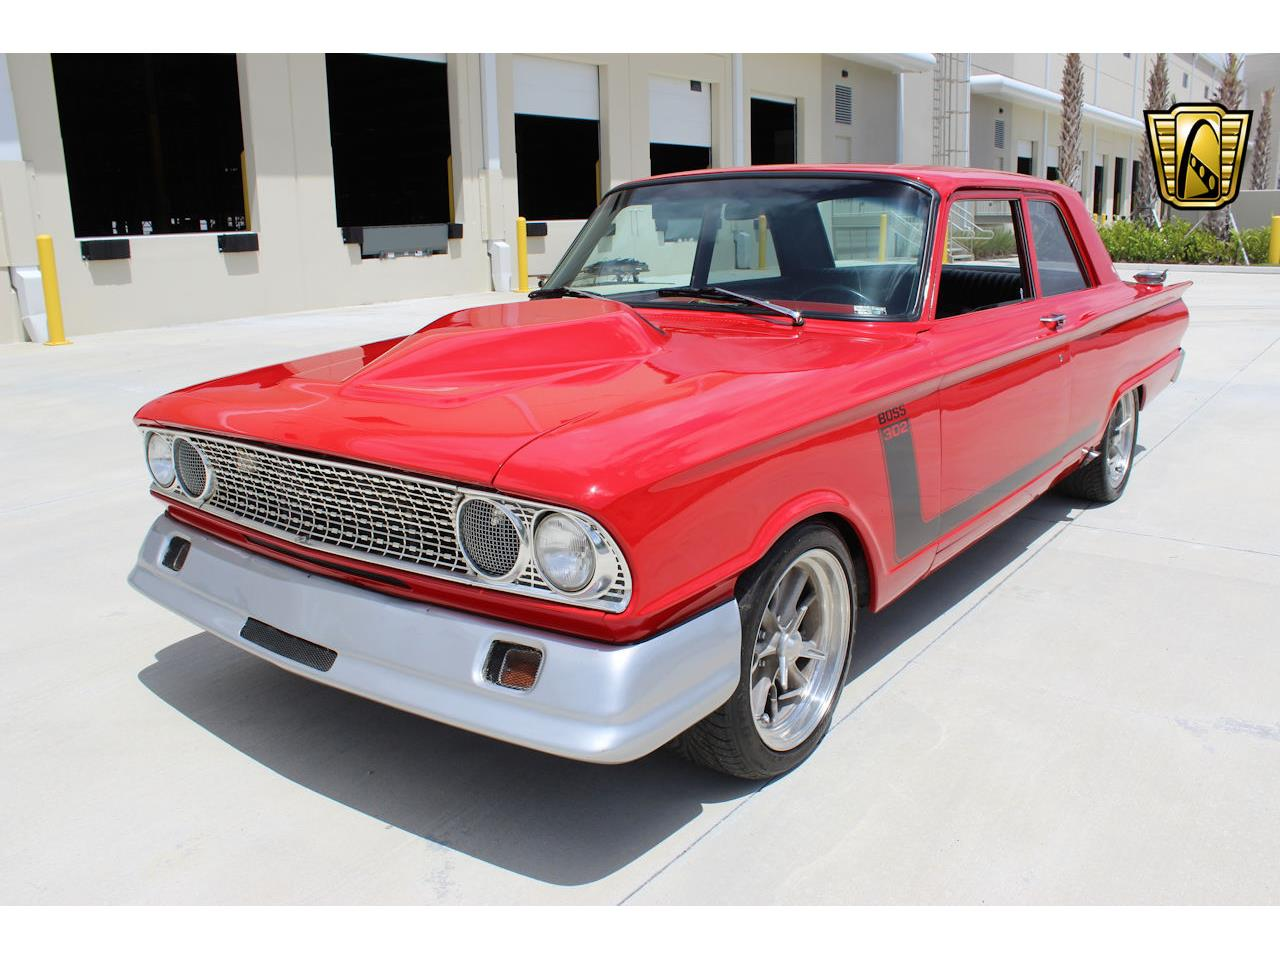 Large Picture of Classic '63 Ford Fairlane located in Coral Springs Florida Offered by Gateway Classic Cars - Fort Lauderdale - MSBB